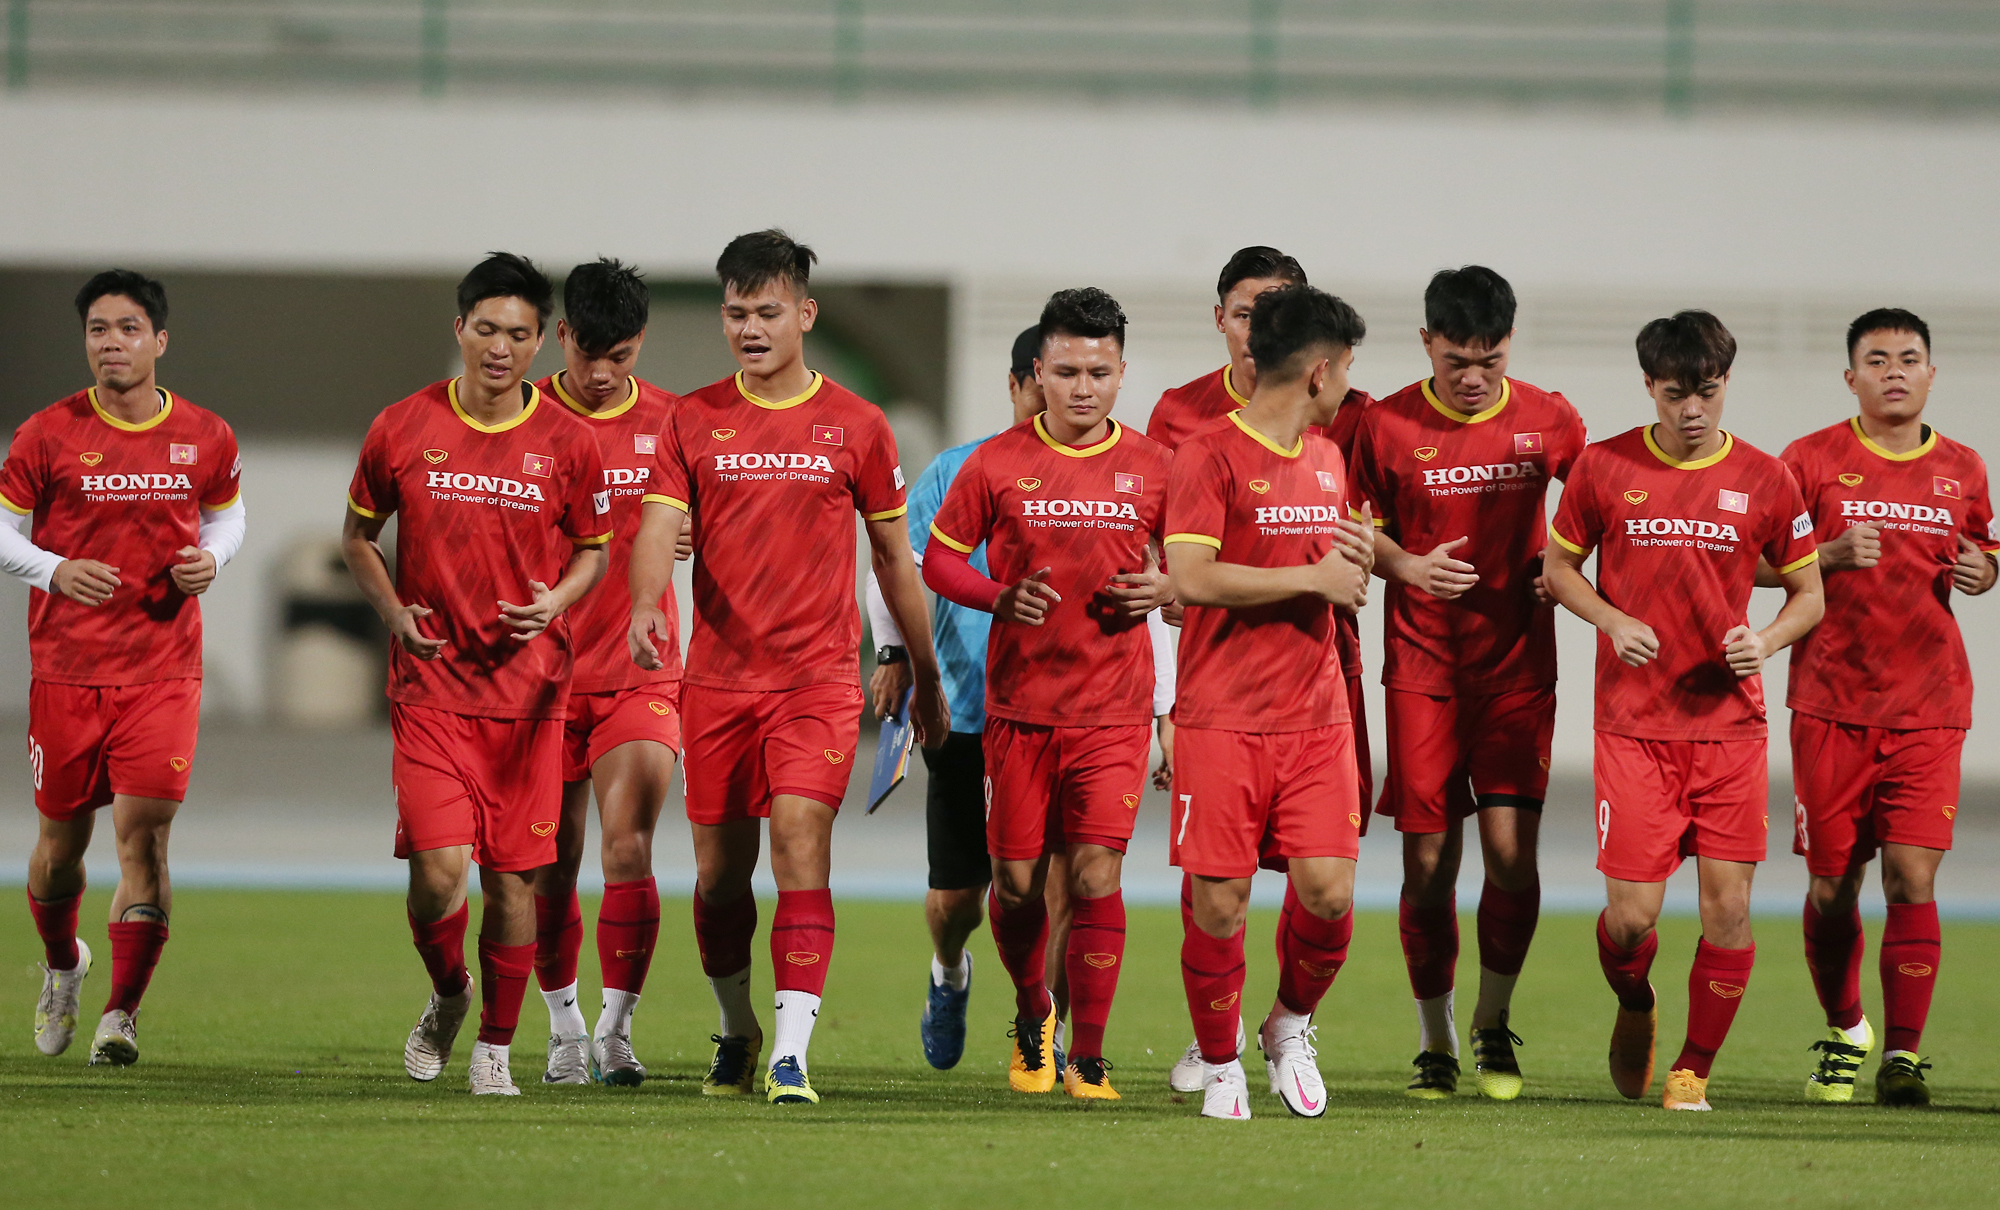 The mens national football team arrived in the UAE early on Thursday and have been training daily.Vietnam are topping group G with 11 points. They will clash with Indonesia on June 7, Malaysia on the 11th and UAE on the 15th. Two wins out of three games will secure them a place in the final World Cup qualification round. Two wins out of three games will secure them a place in the final World Cup qualification round.